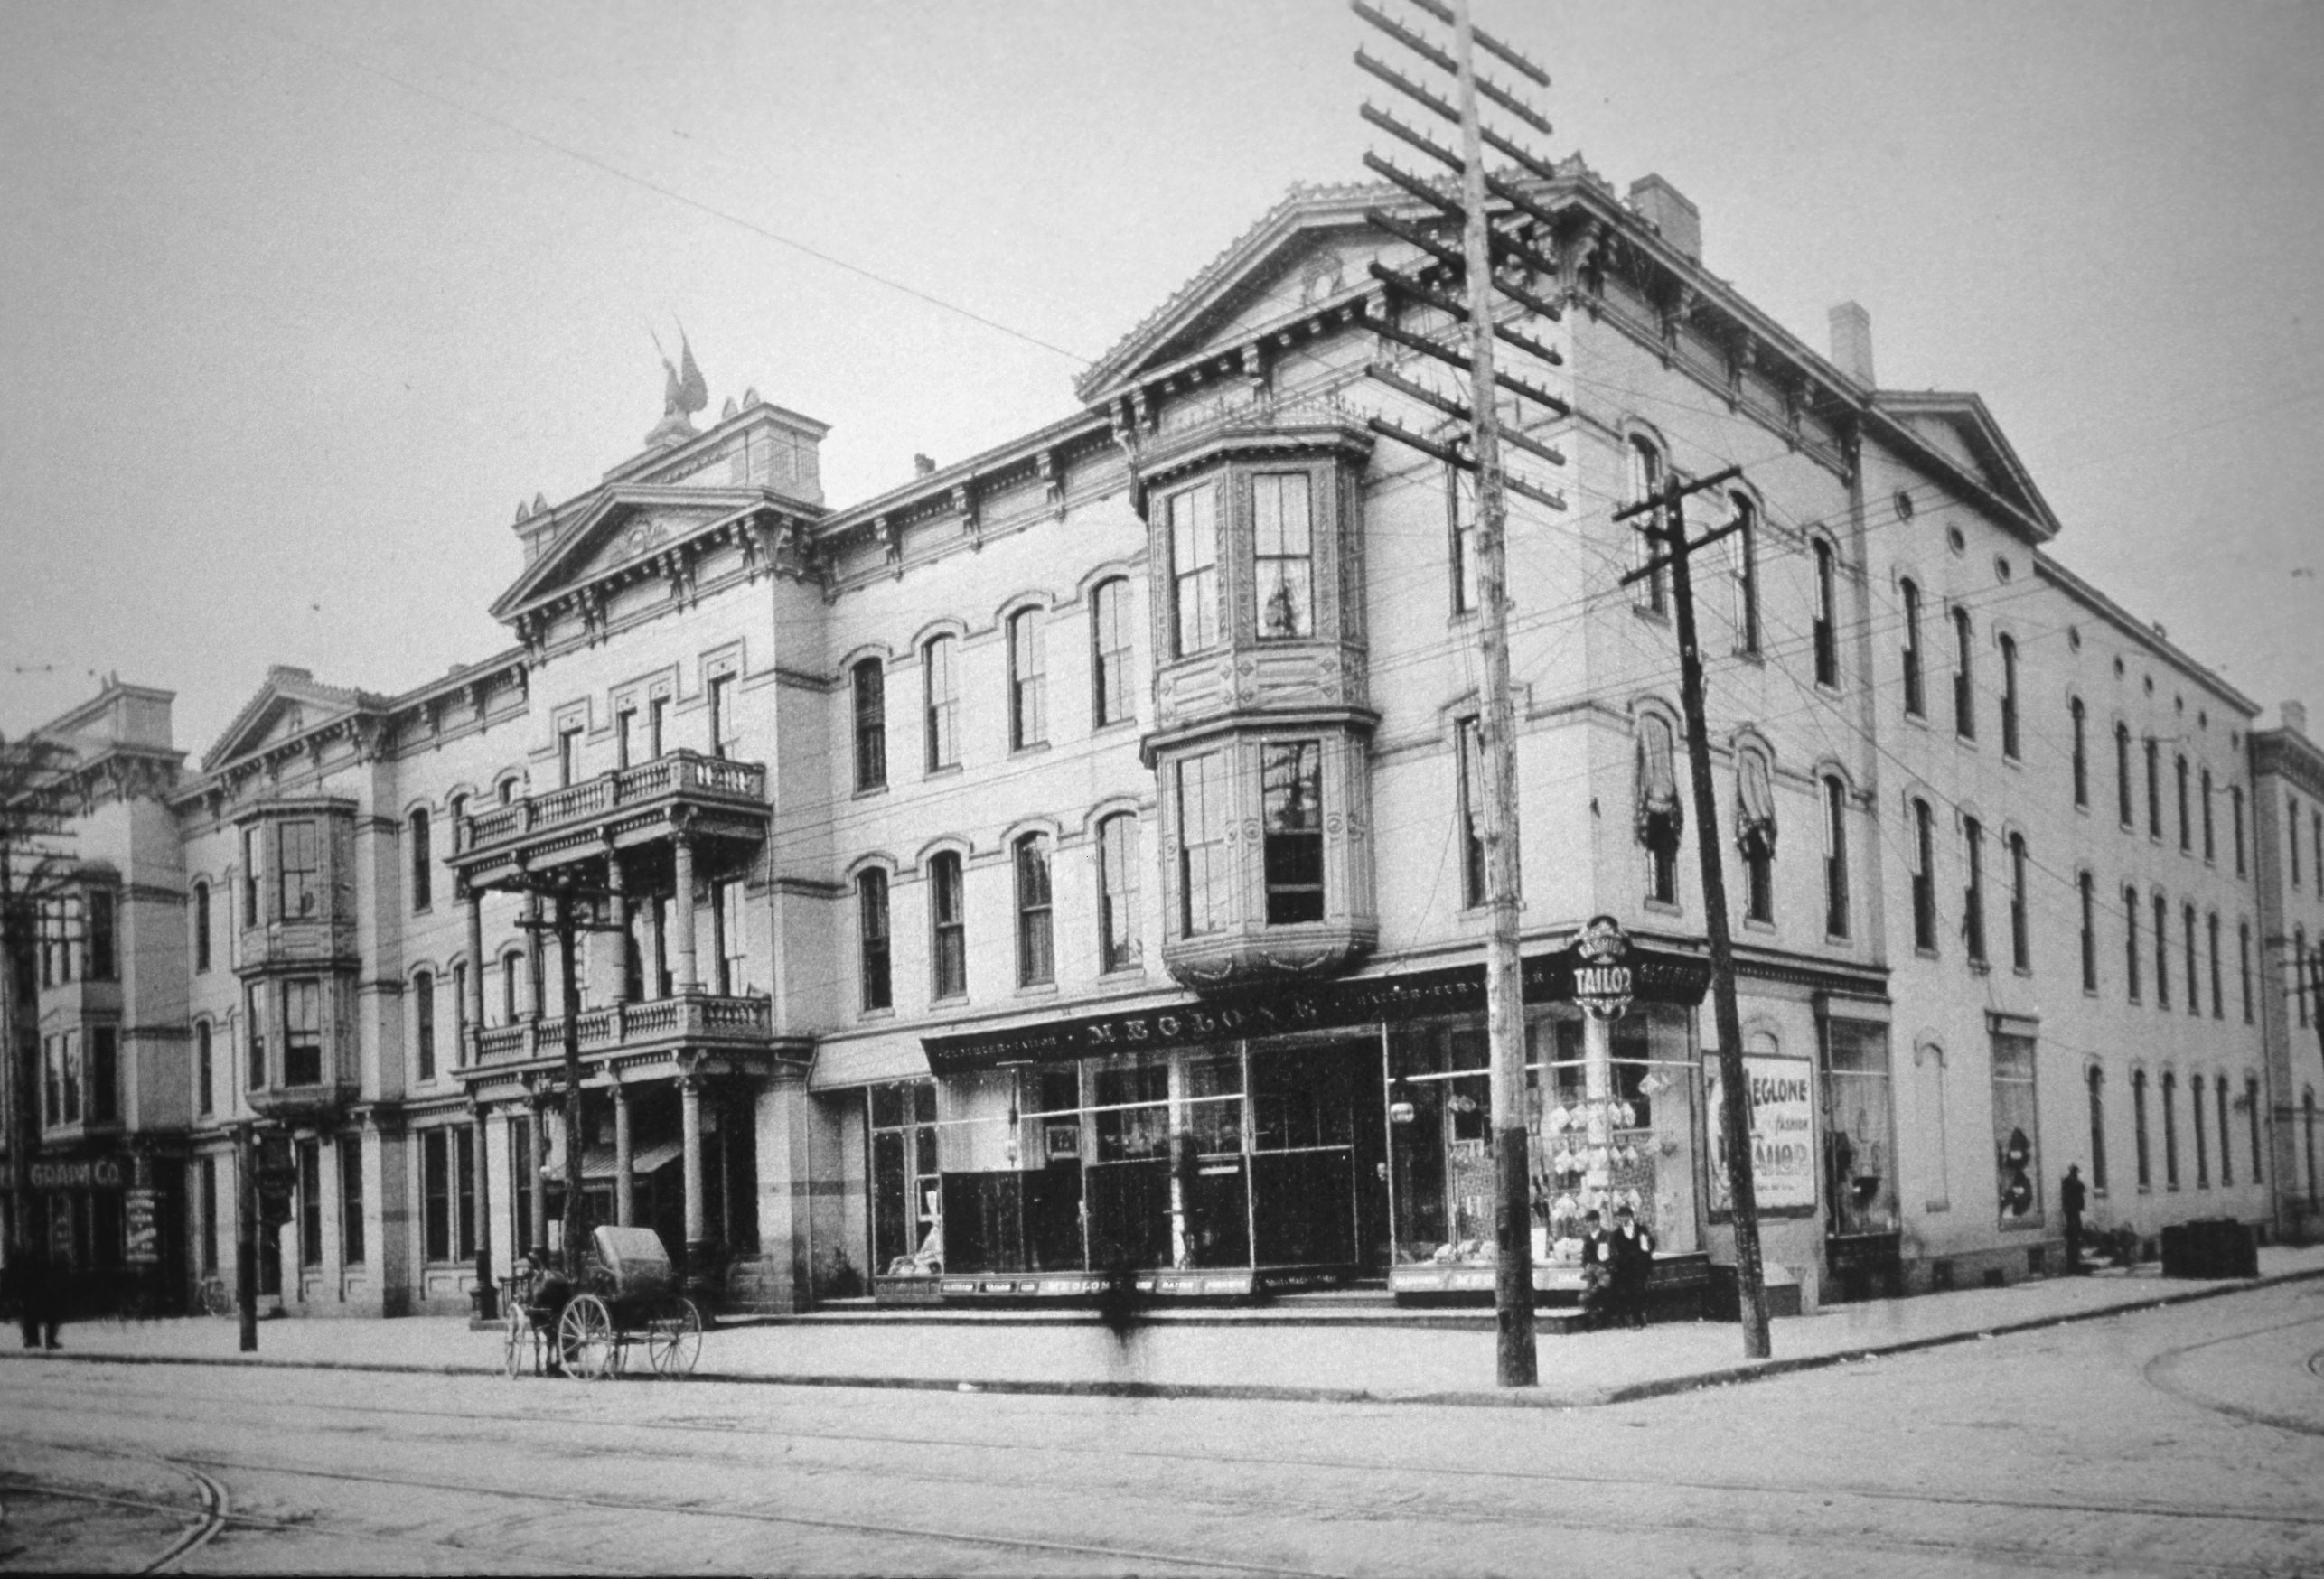 Not many photos of the original tavern have survived. This photograph captures the newly built Phoenix Hotel after it was built following Postlethwait Tavern's fire.